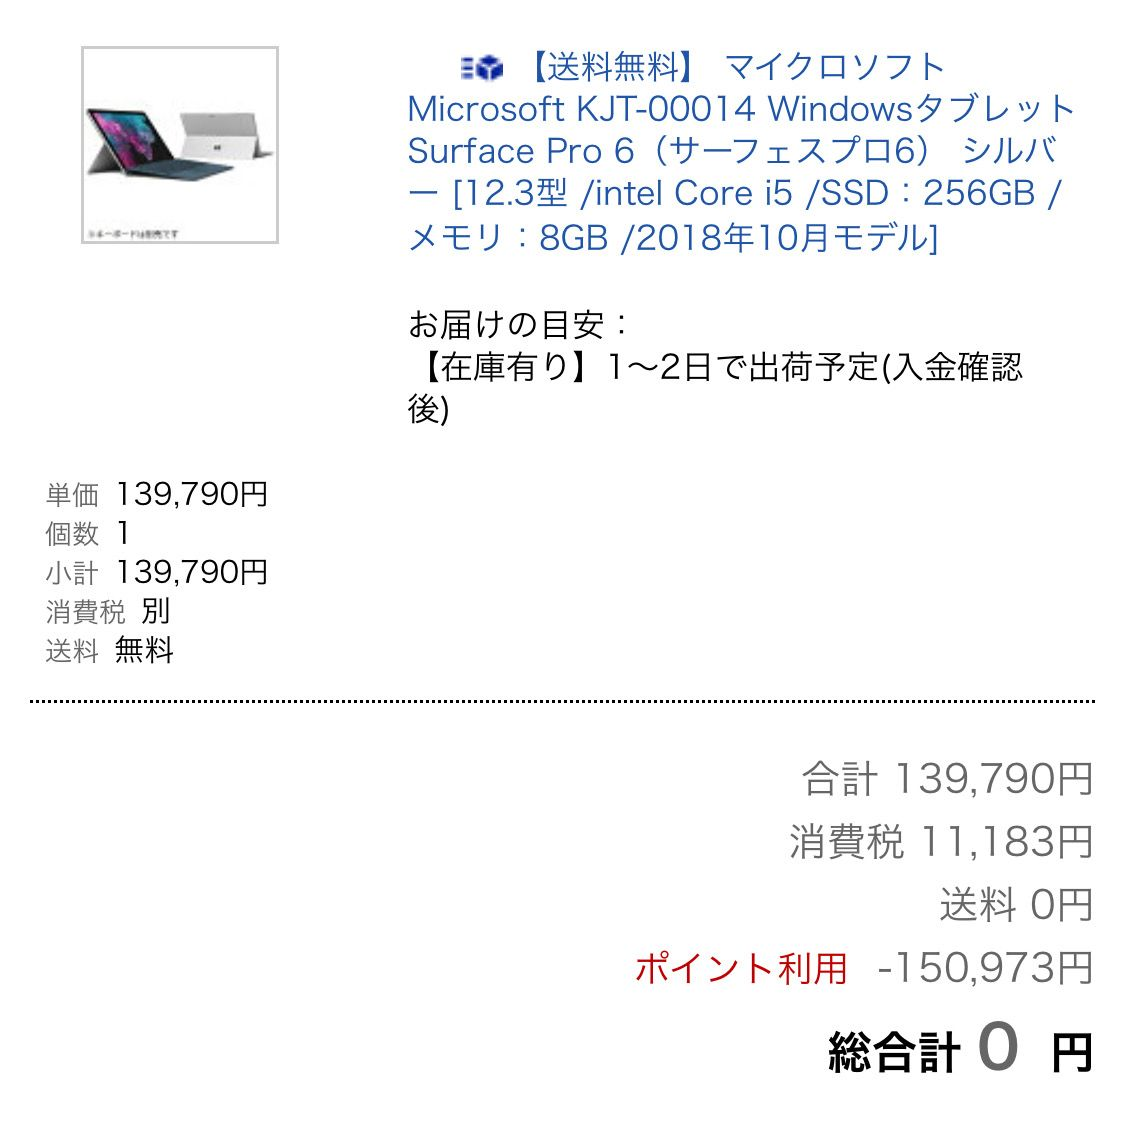 Surface Pro 6を全額楽天ポイント払い